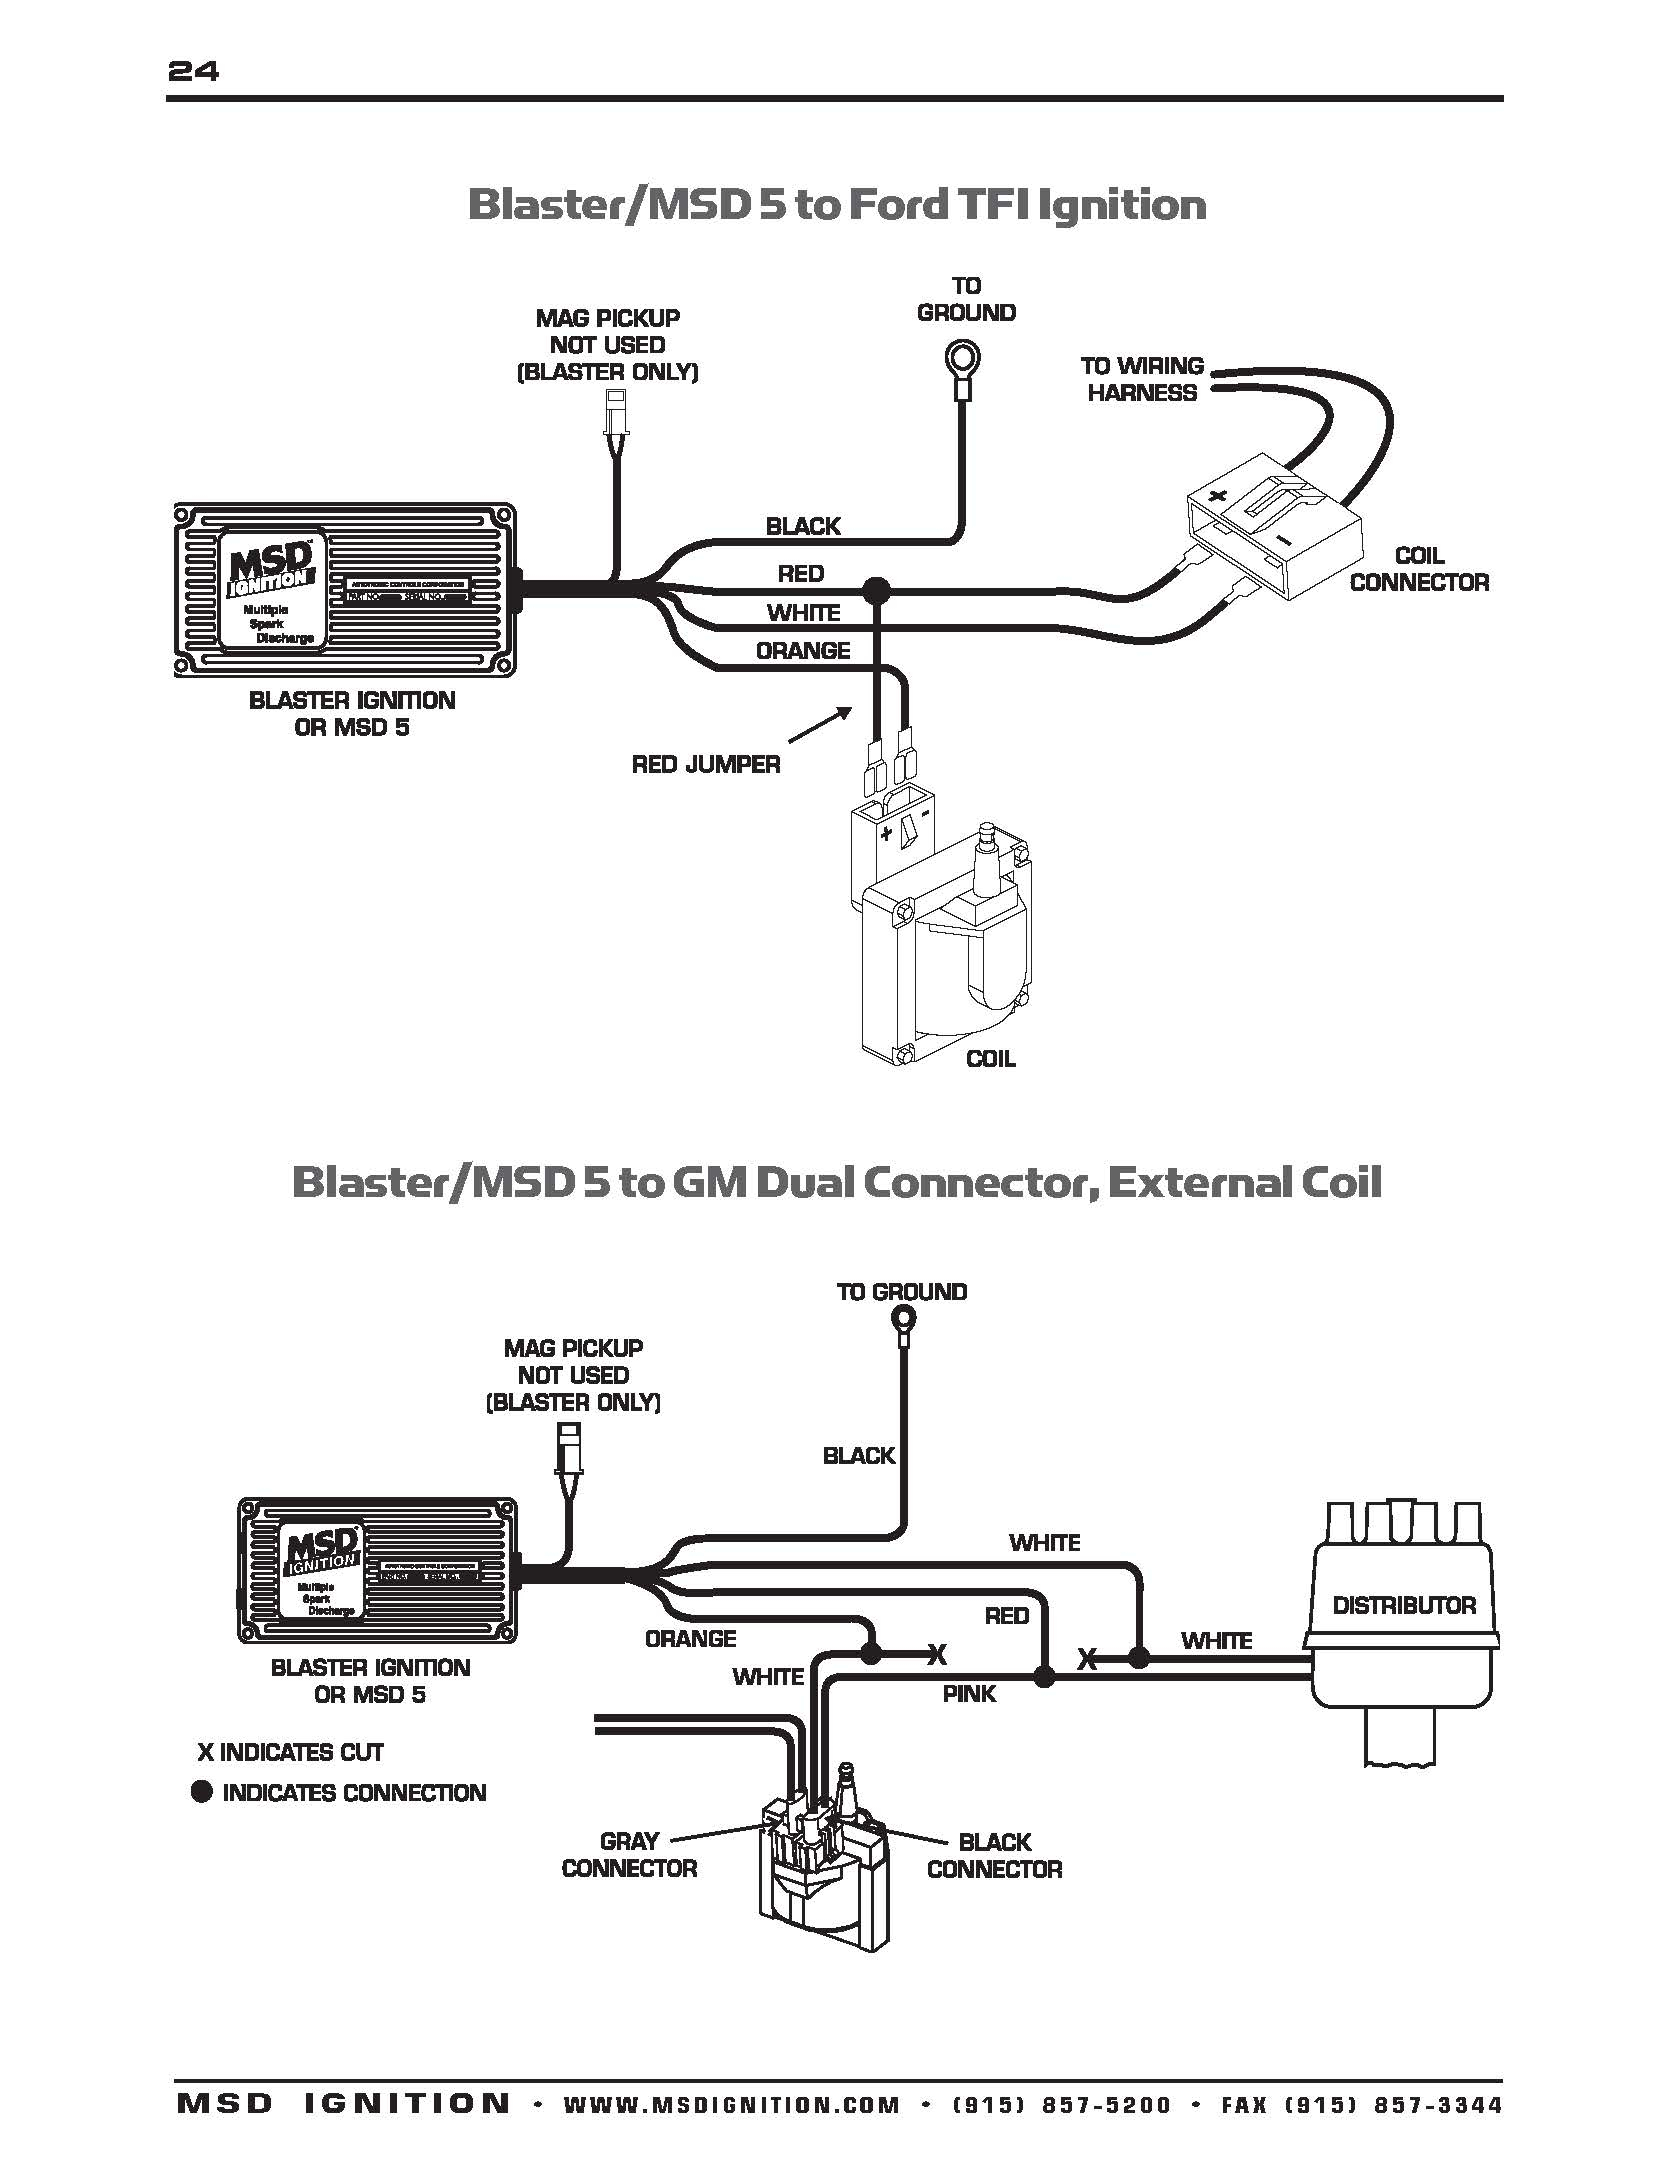 Chevy Lt1 Msd Ignition Wiring Diagram | Manual E-Books - Msd Ignition Wiring Diagram Chevy